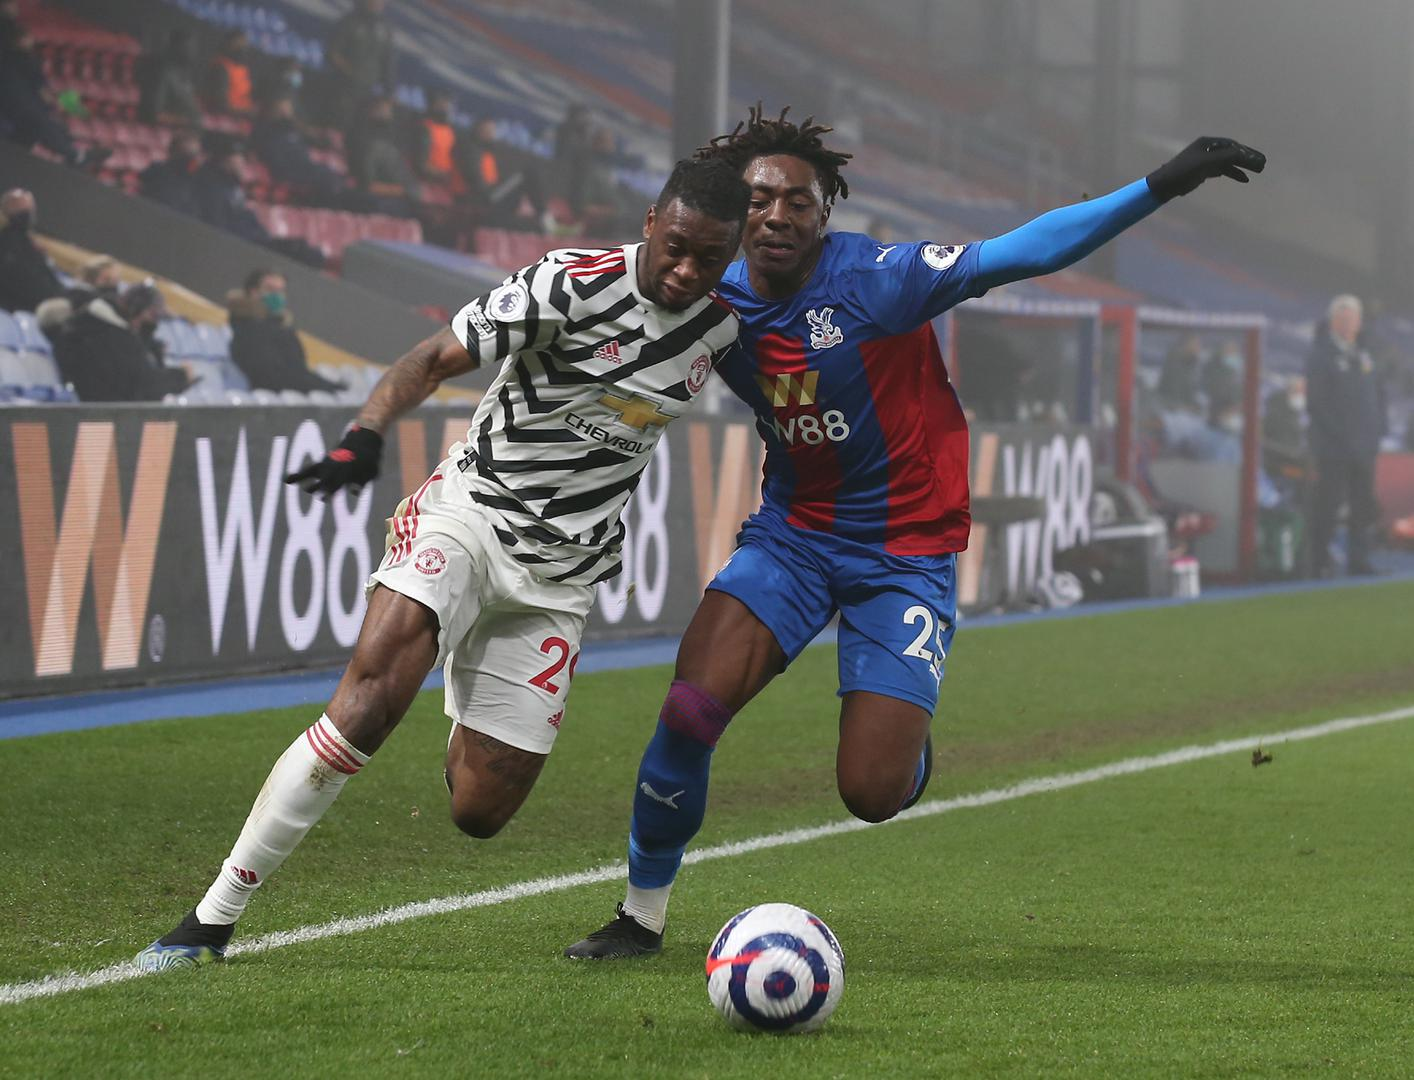 Aaron Wan-Bissaka battles for the ballcc